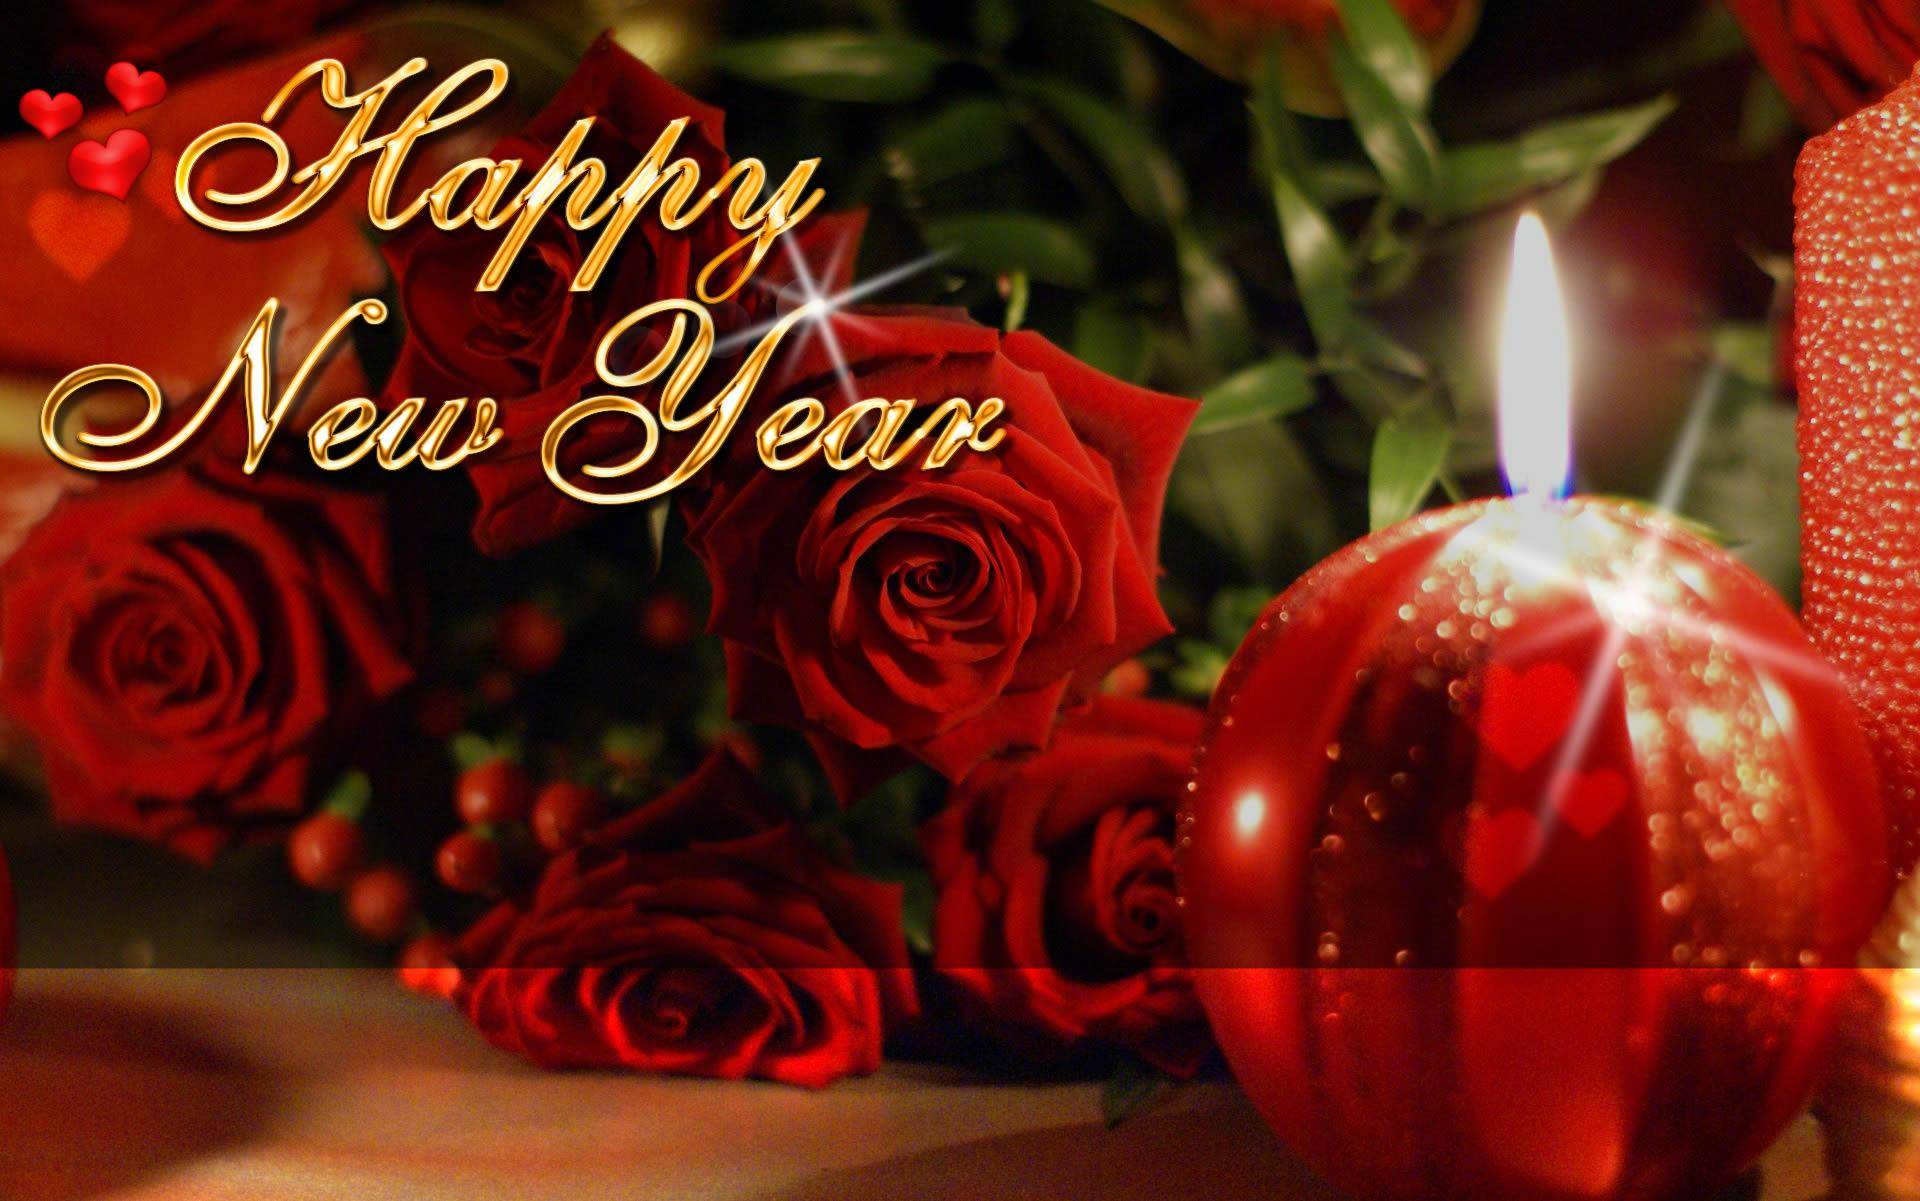 happy new year wallpaper   AmusingFuncom Pictures and Graphics for 1920x1201